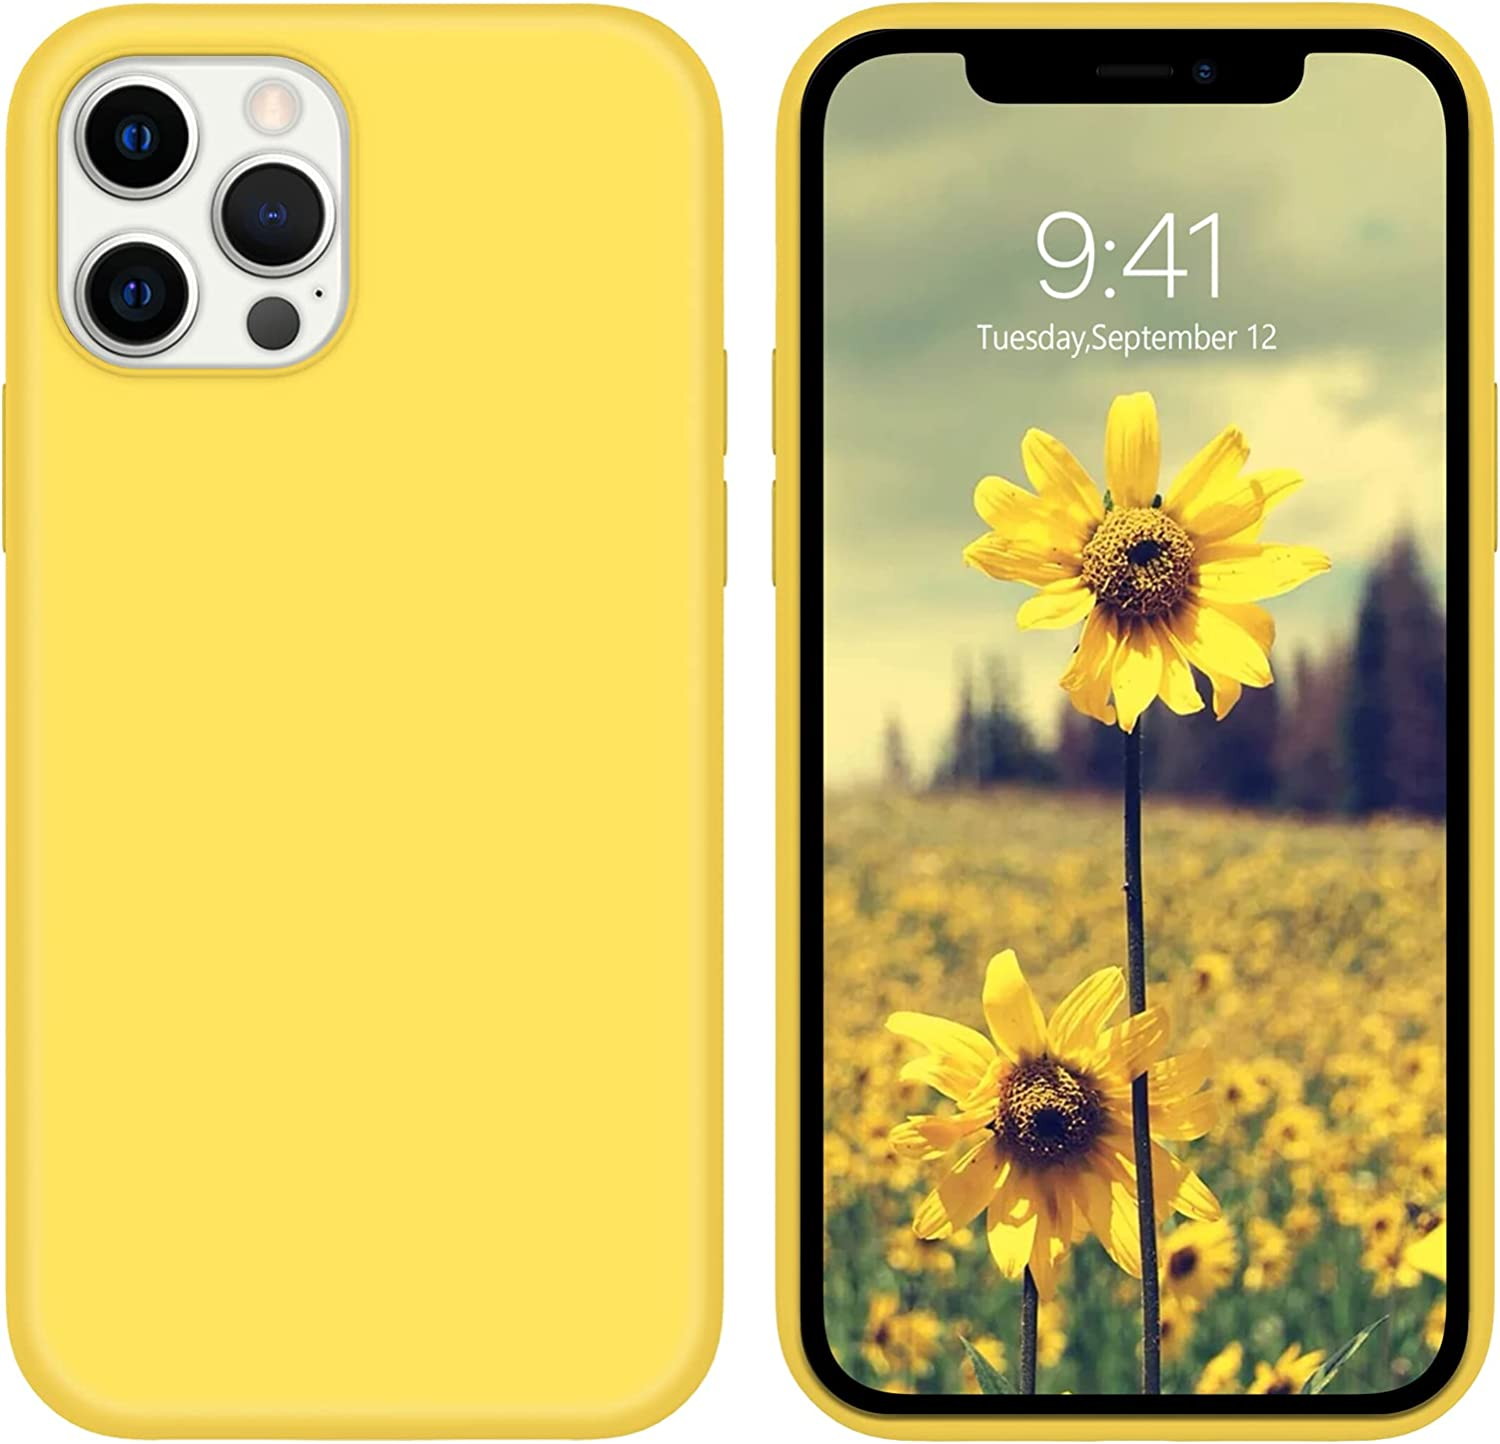 DUEDUE Compatible with iPhone 12 Case,iPhone 12 Pro Case, Liquid Silicone Soft Gel Rubber Slim Cover with Microfiber Cloth Lining Cushion Shockproof Full Protective Case for iPhone 12/12 Pro, Yellow